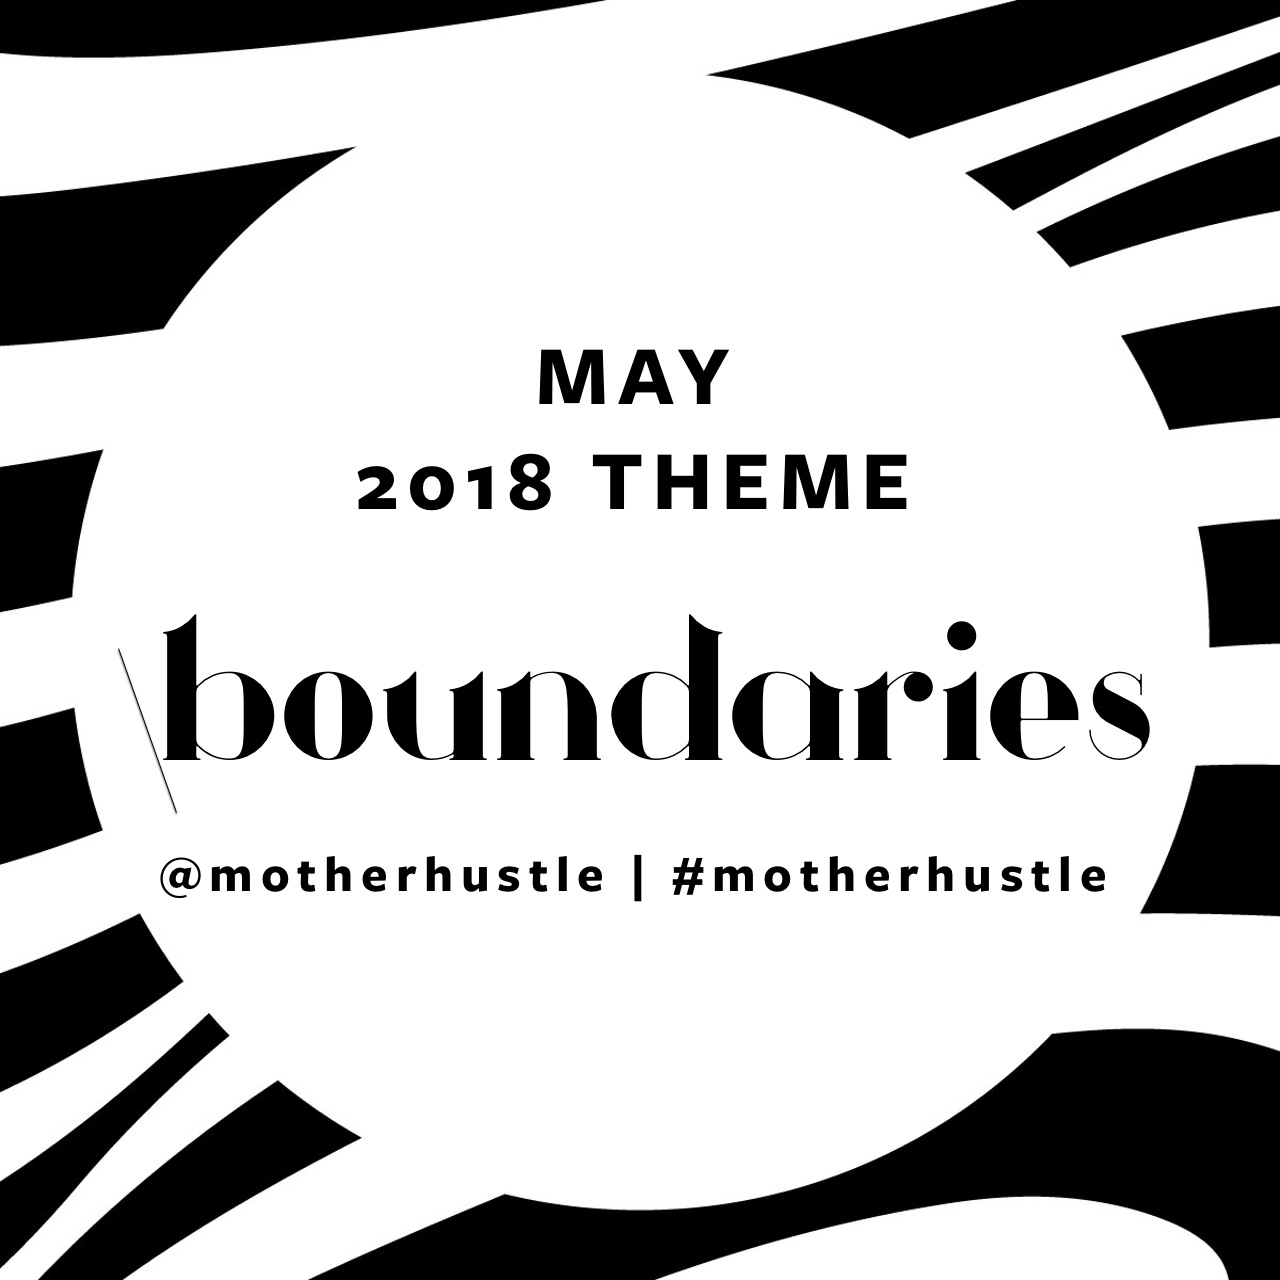 motherhustle may 18 theme-boundaries-square